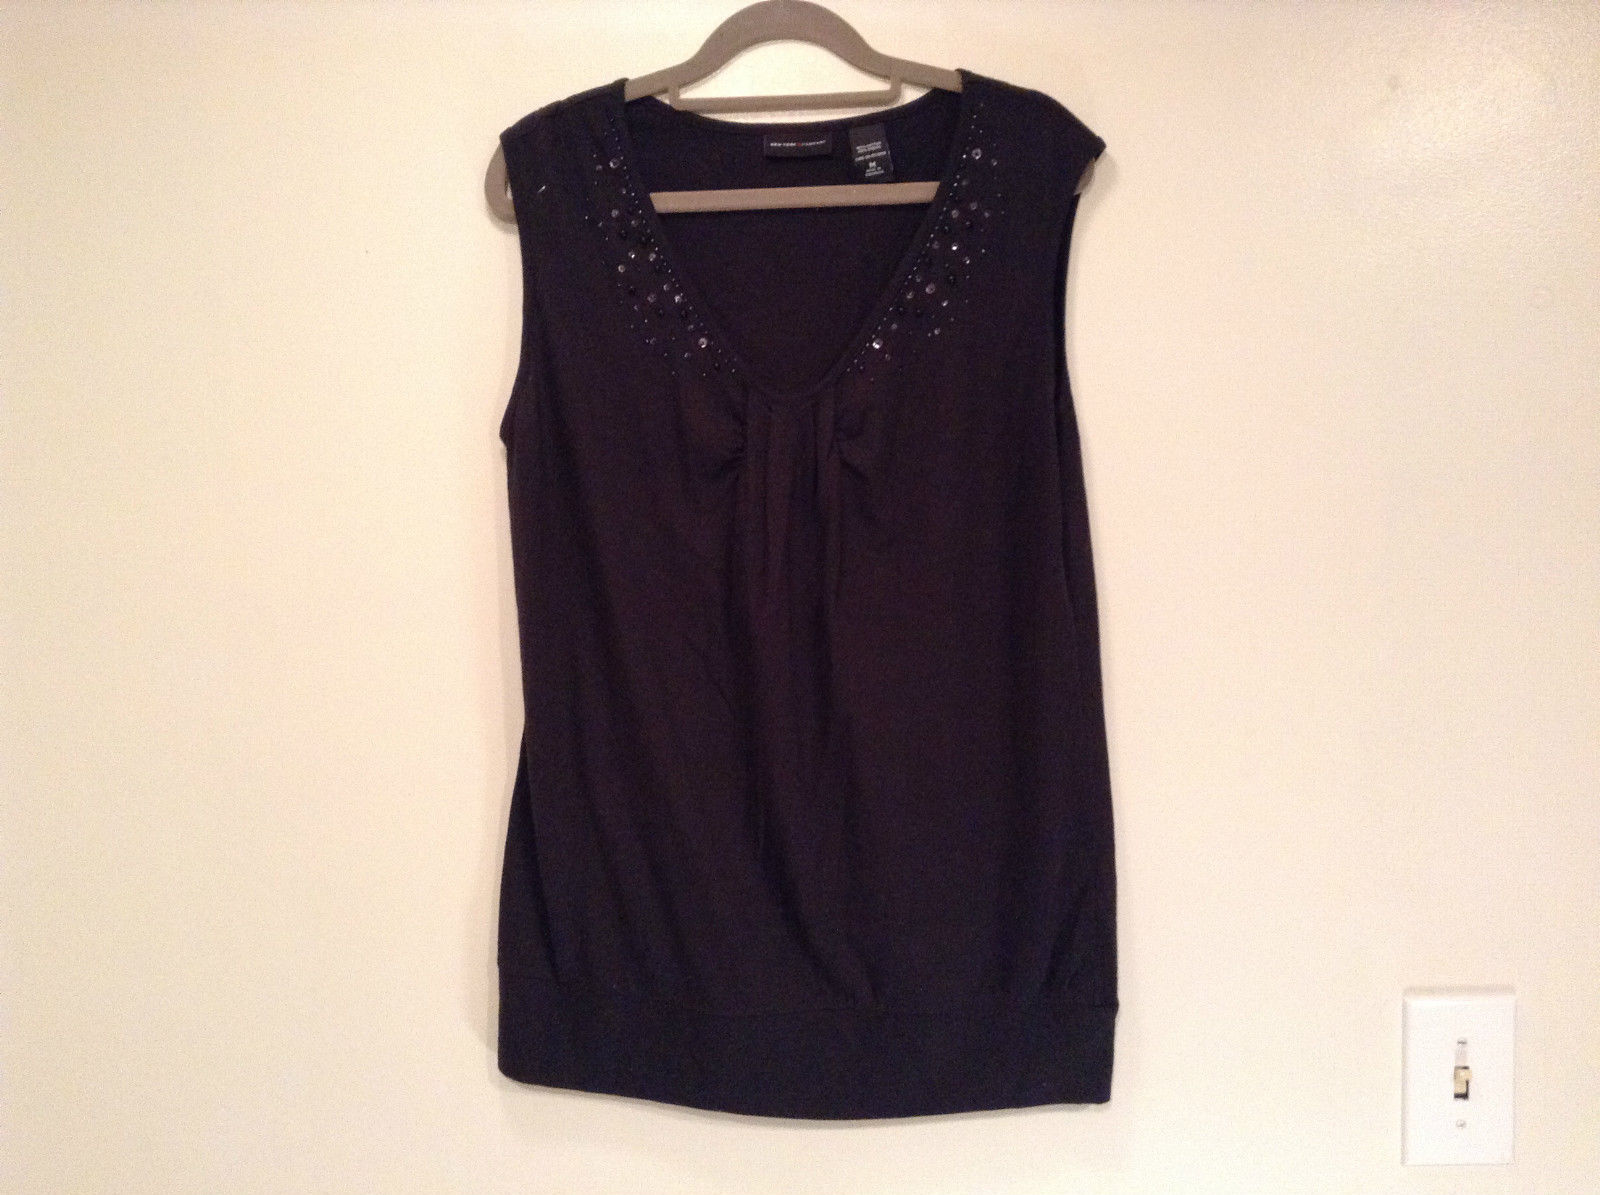 Black Size Medium Sleeveless New York and Company Top Cotton Blend Beads